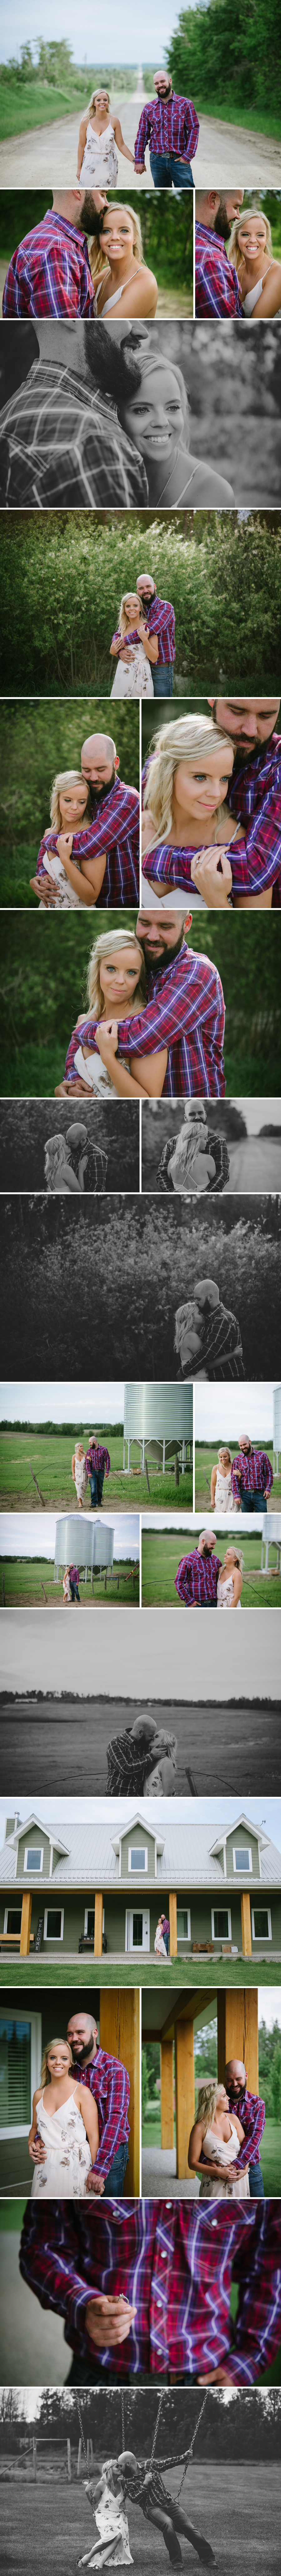 yeg_bbcollective_blog_engaged_michelleanddylan_2017_wedding_photography